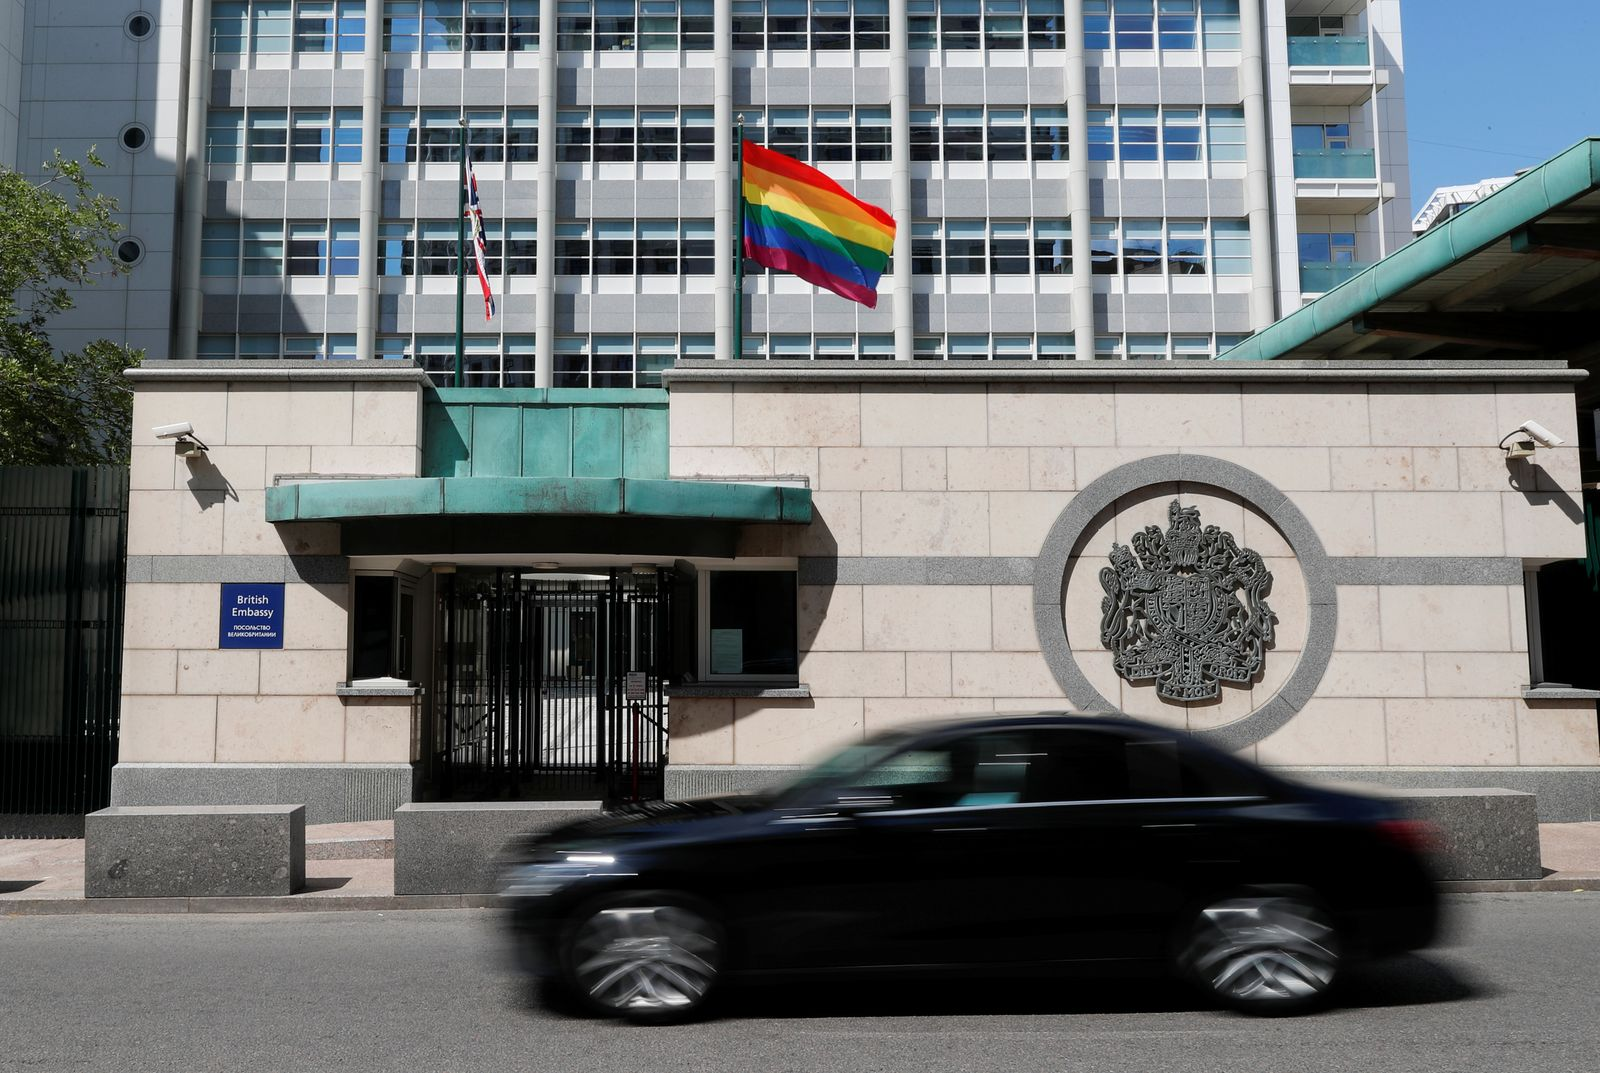 A rainbow flag flies in support of the LGBT community at the British Embassy in Moscow